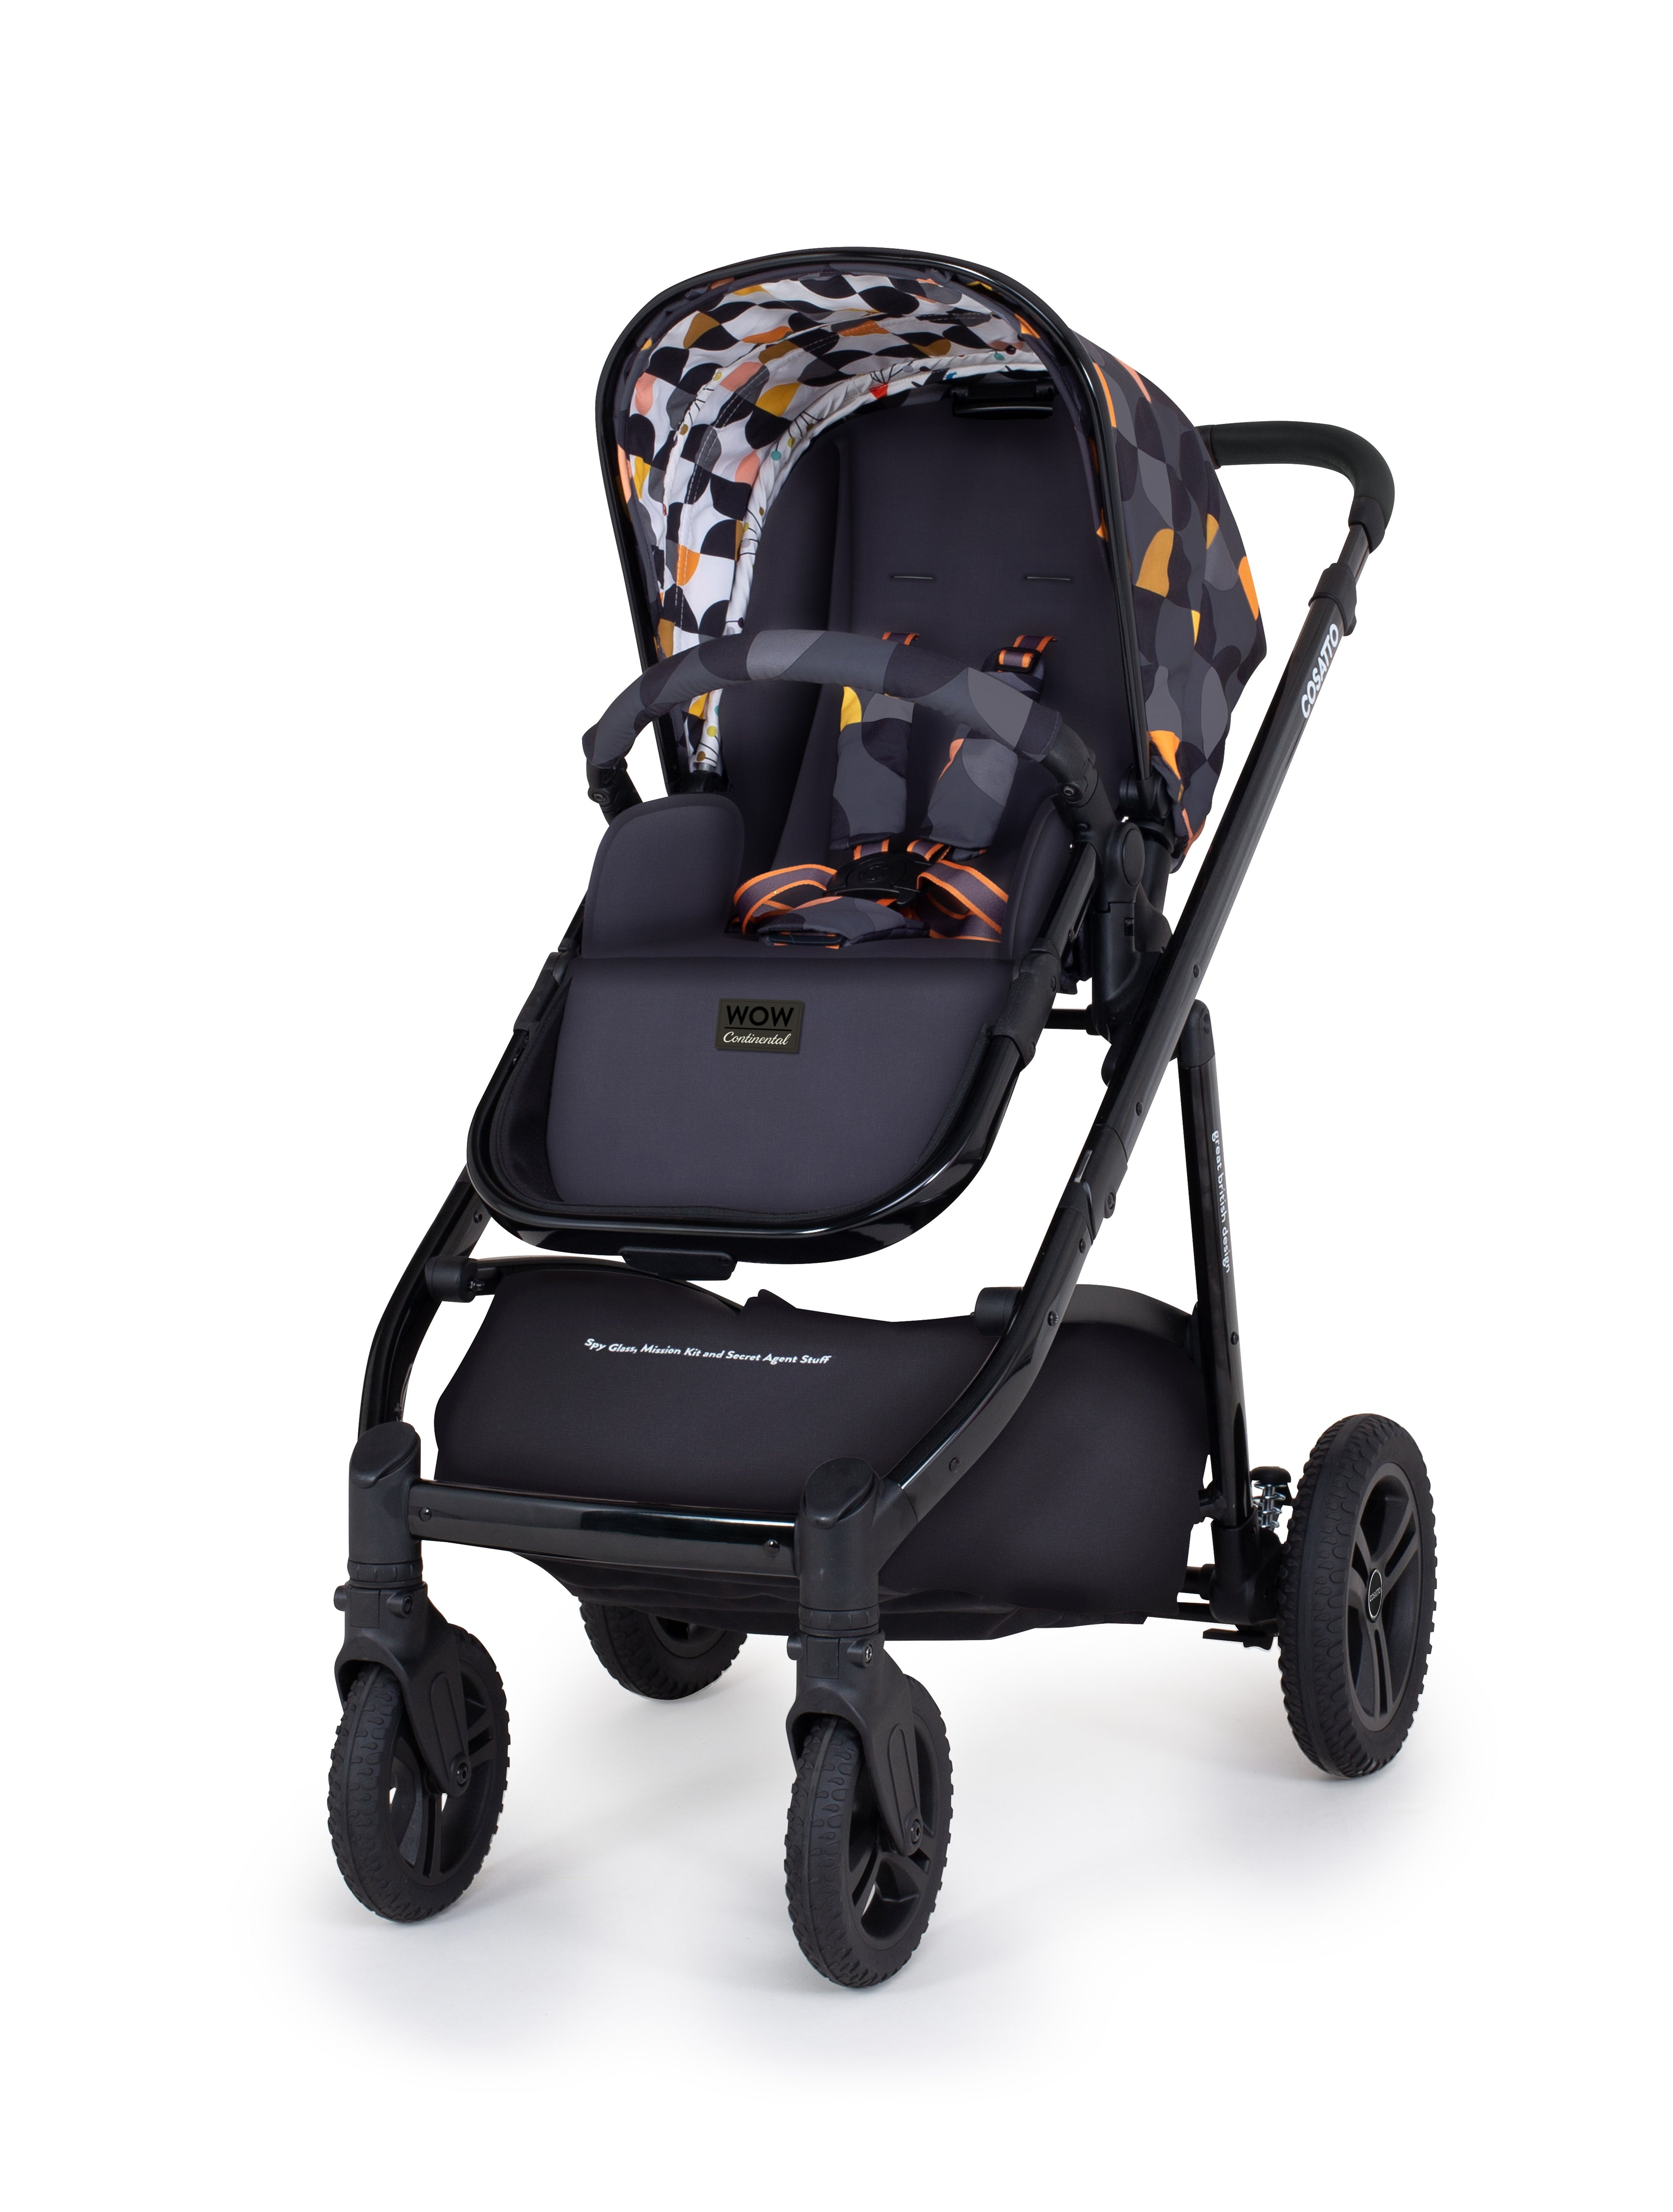 Wow Continental Pushchair Debut